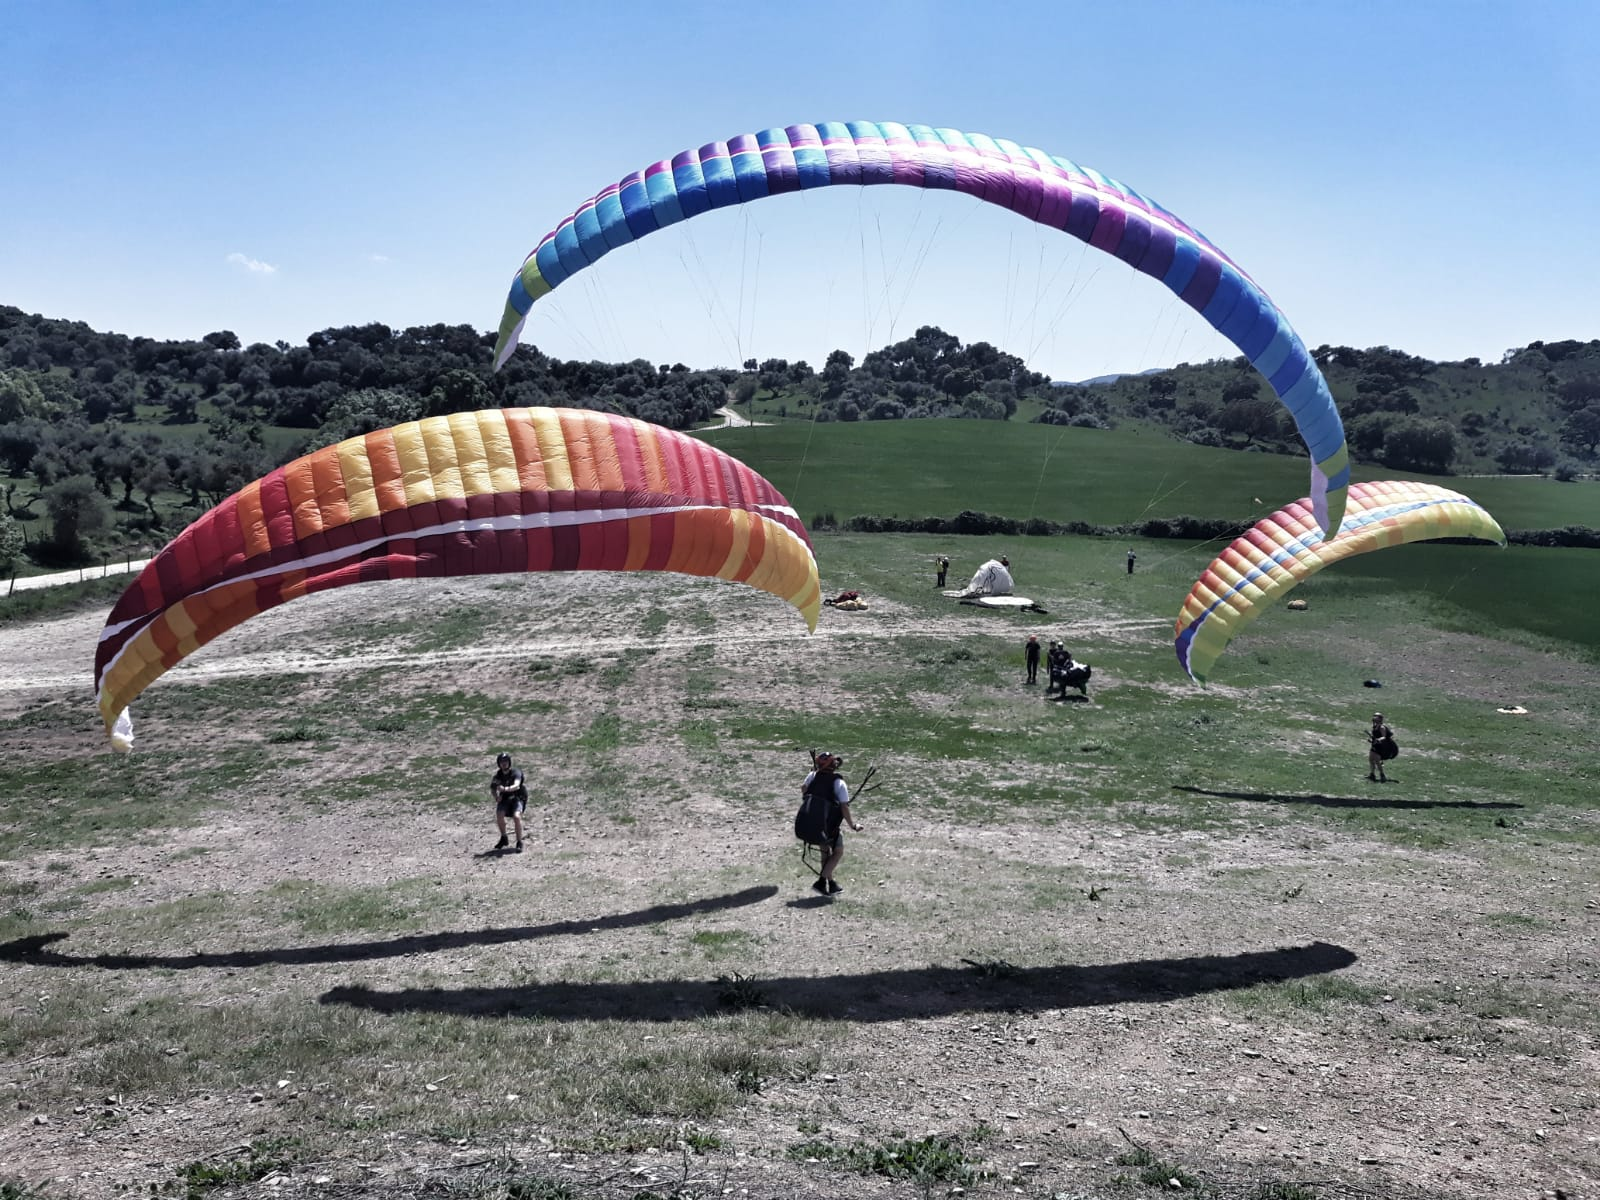 Want to learn paragliding over Summer